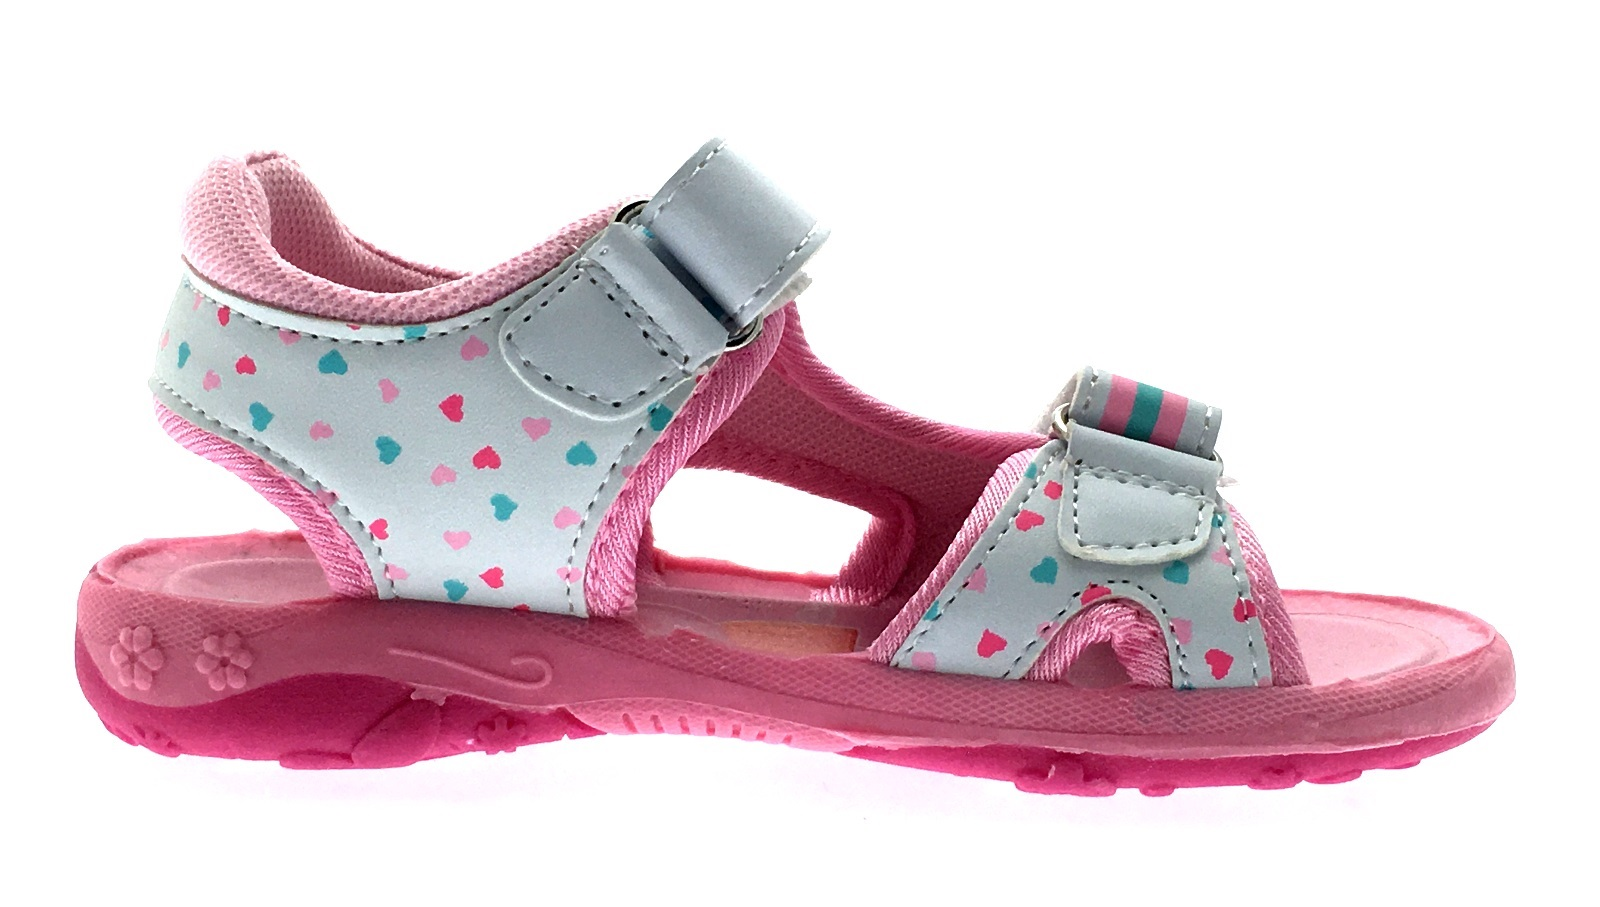 girls peppa pig sandals fully adjustable straps in pink kids comfort shoes size ebay. Black Bedroom Furniture Sets. Home Design Ideas